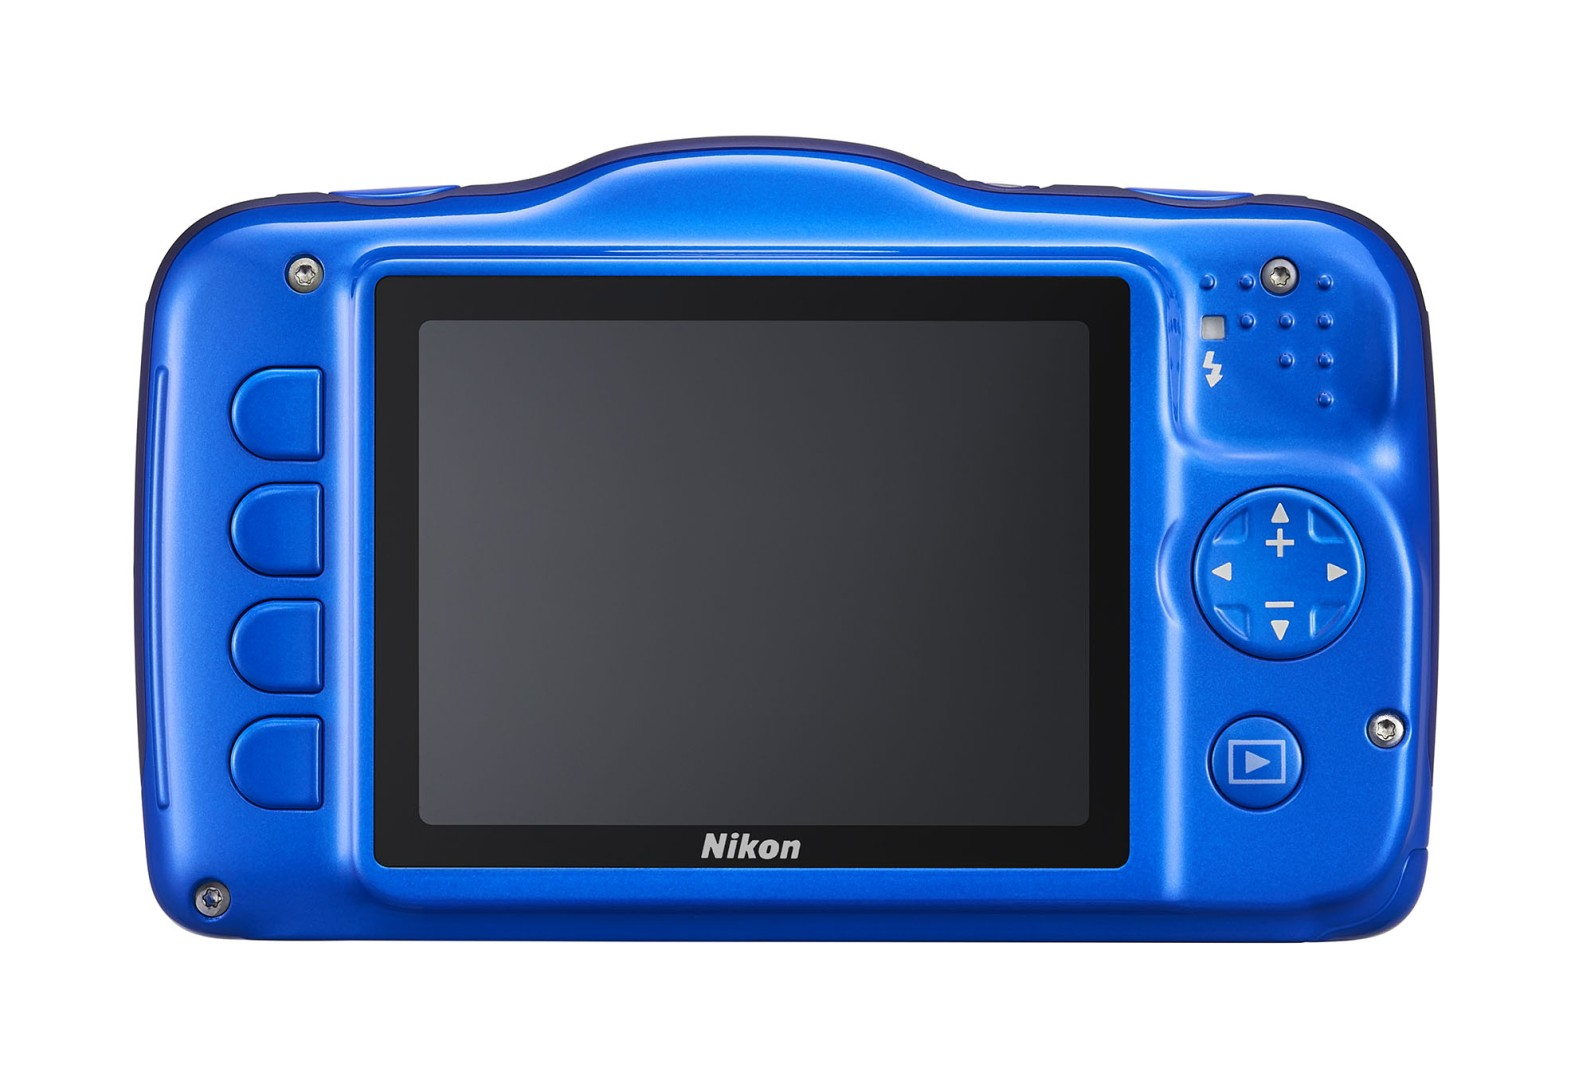 nikon-coolpix-aw120-s32-waterproof-cameras-revealed-available-starting-march-424860-7.jpg